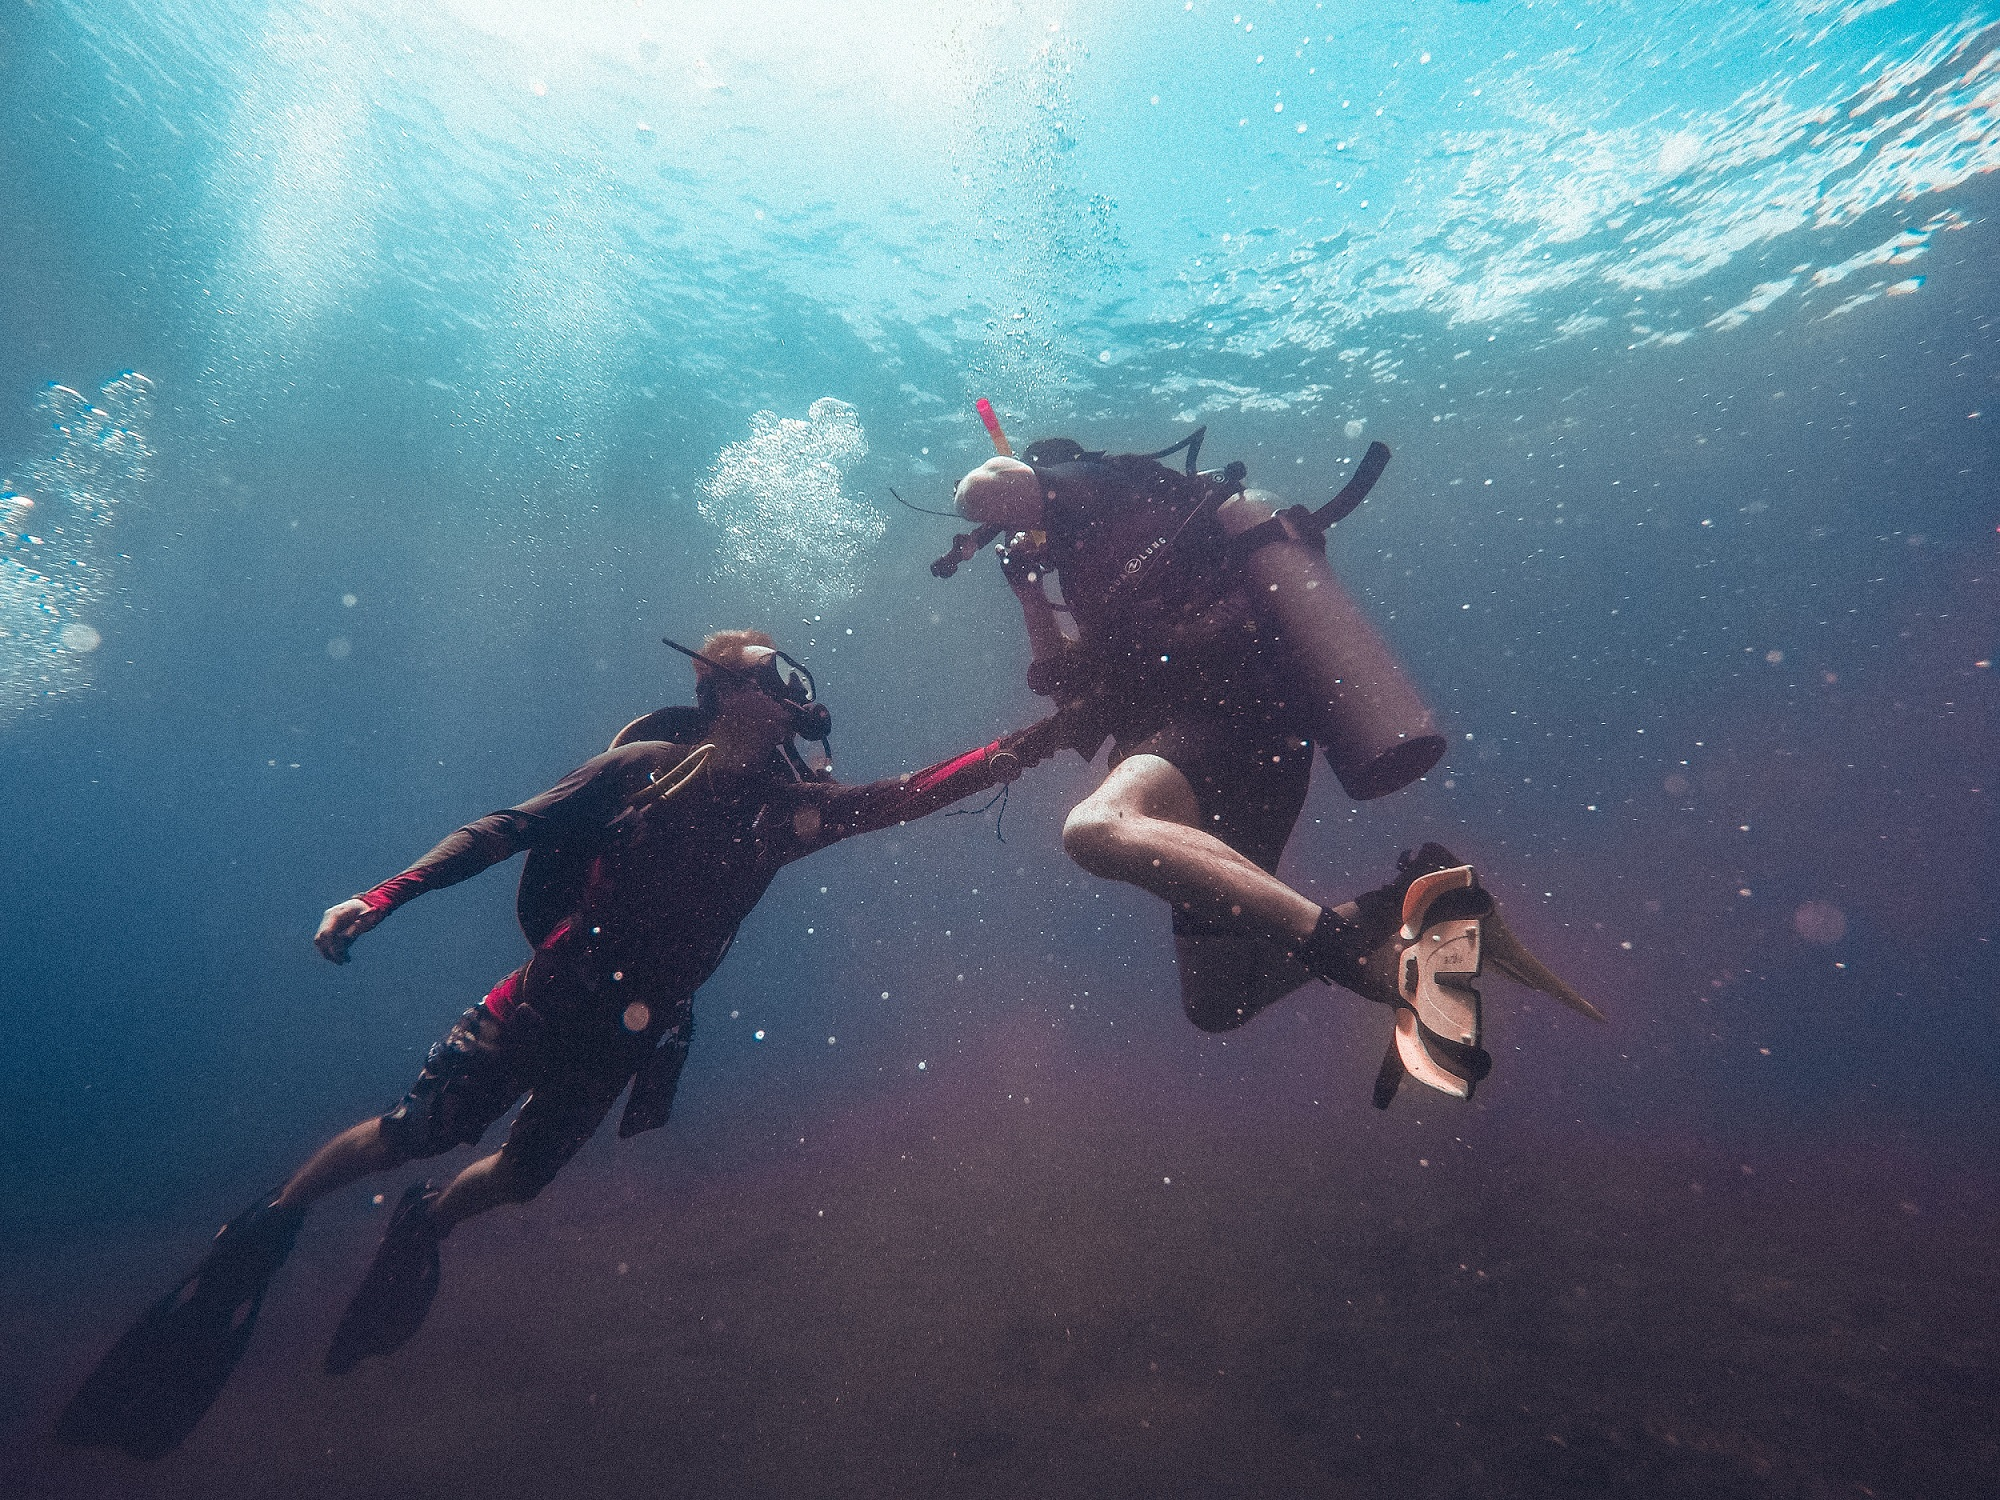 How to be an environmentally friendly scuba diver